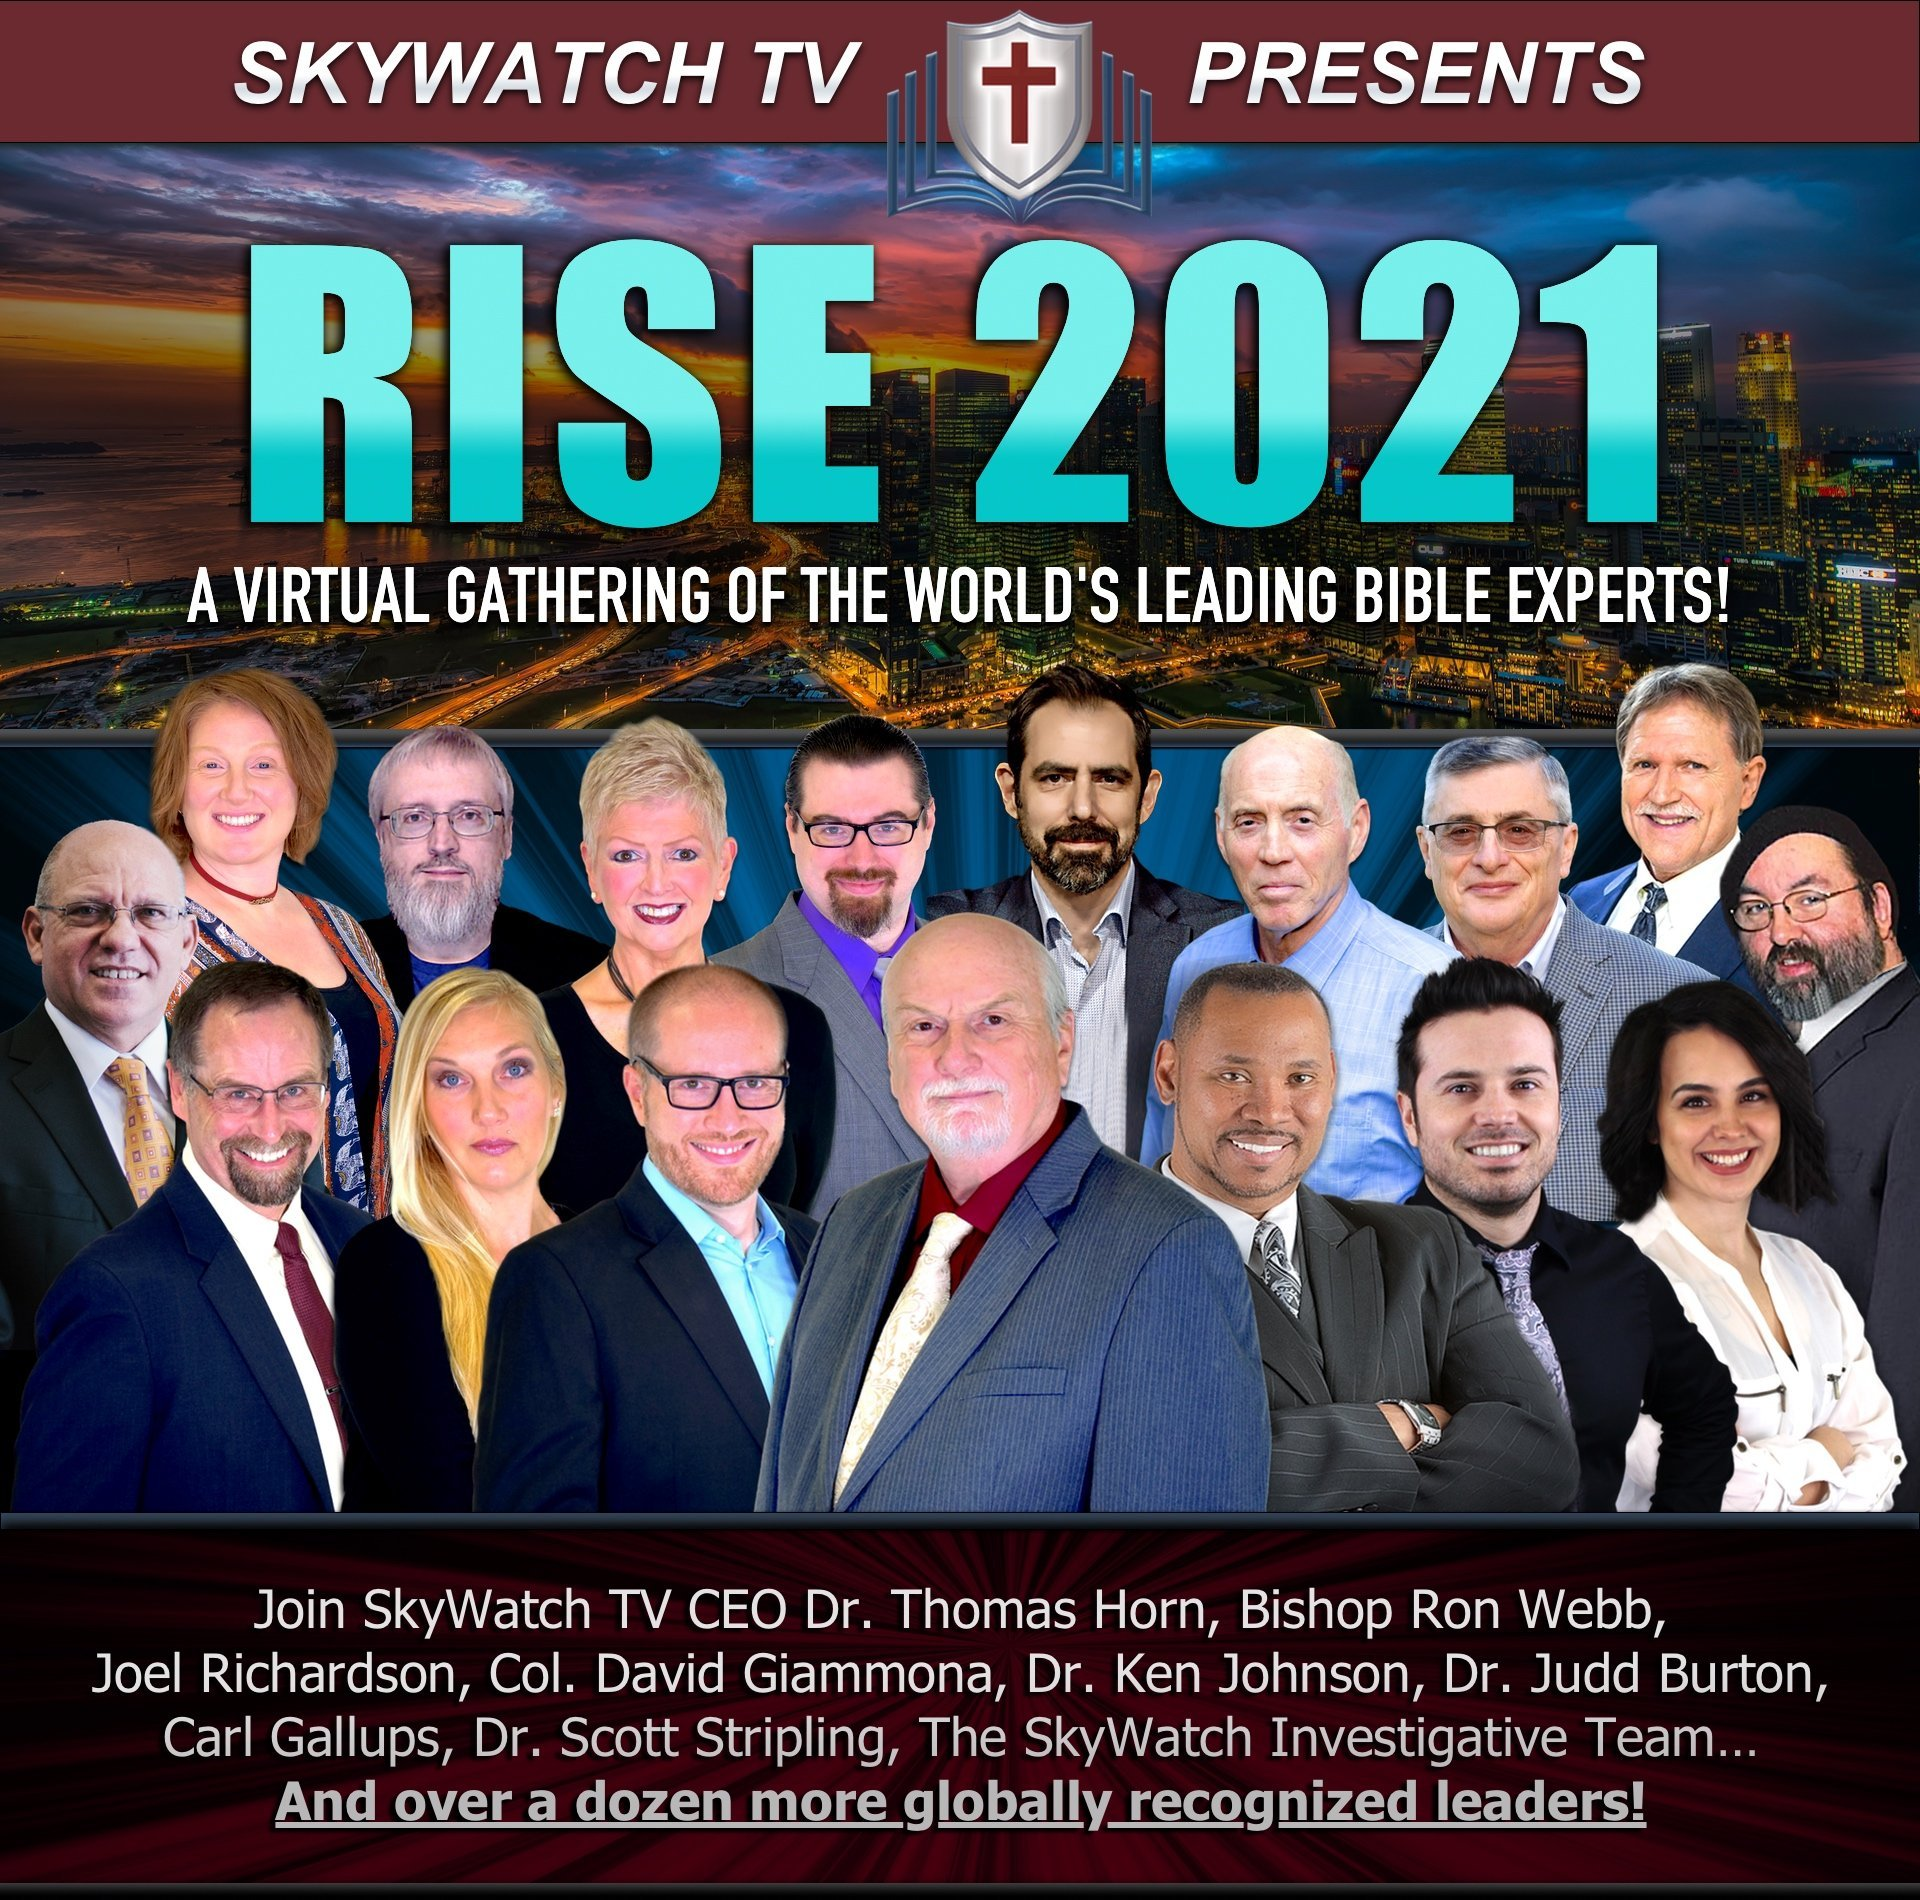 50 HOURS OF PRESENTATIONS FROM WORLD-RENOWN THEOLOGIANS, PROPHECY EXPERTS, ARCHAEOLOGISTS & MORE!